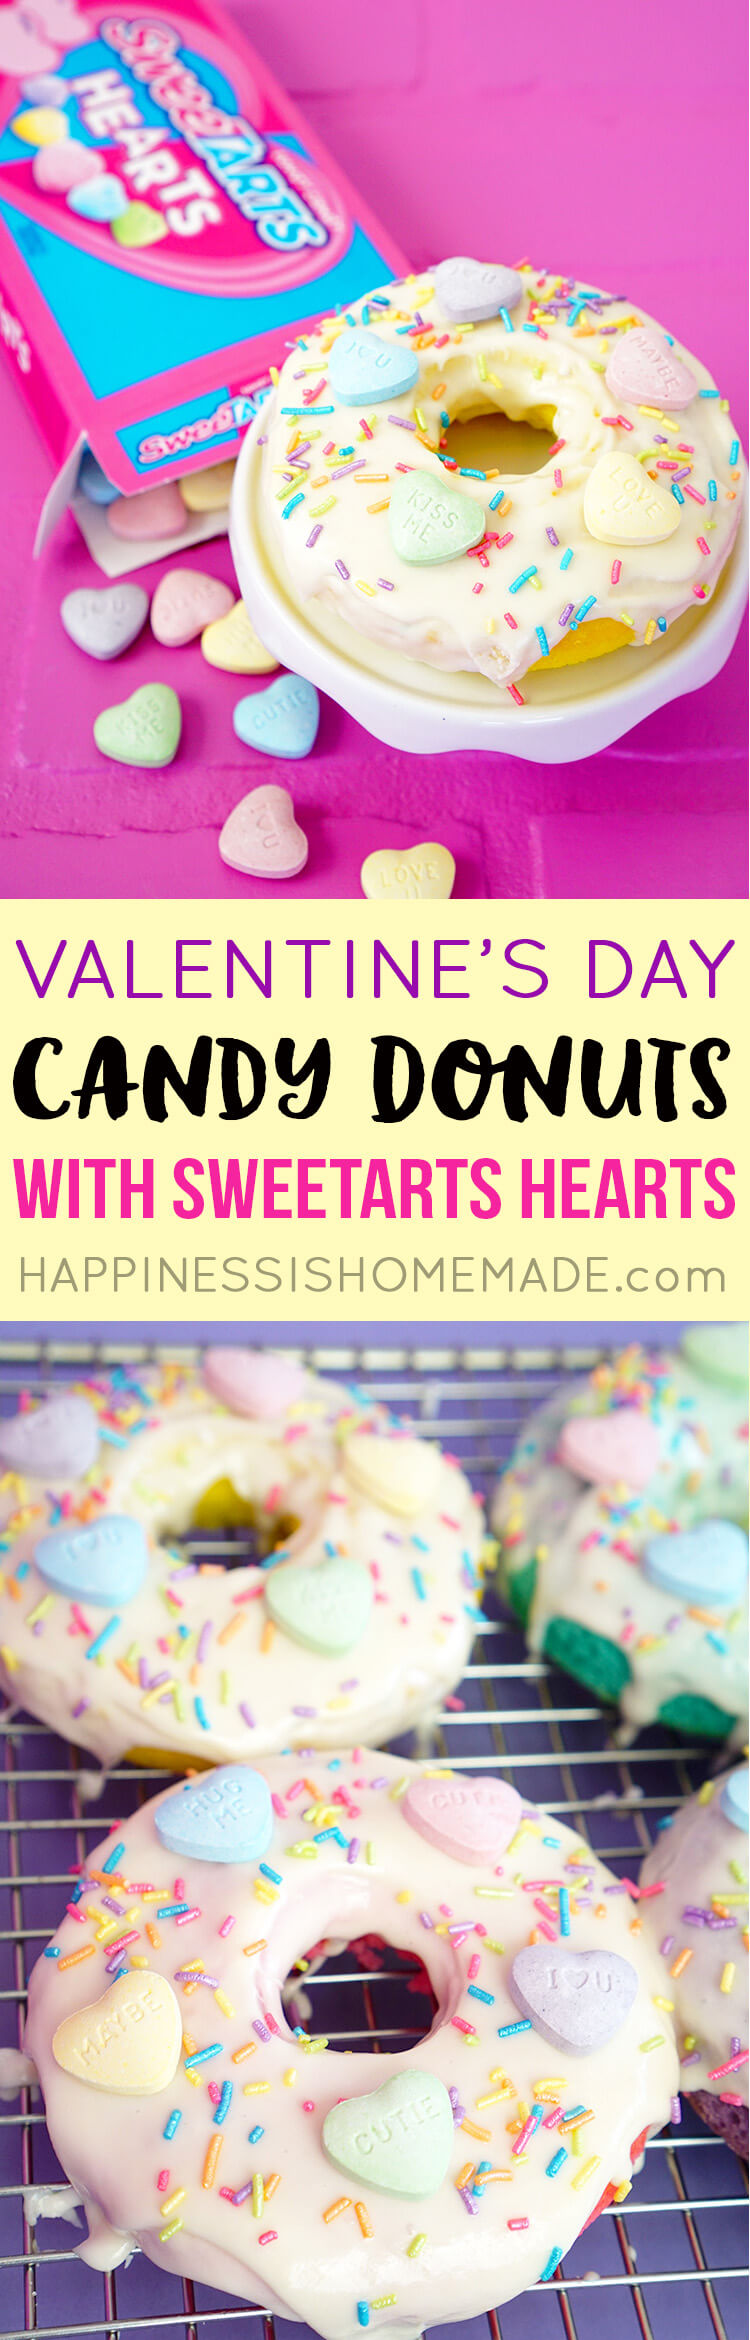 SweeTART Hearts Candy Valentine's Day Donuts Gift Idea